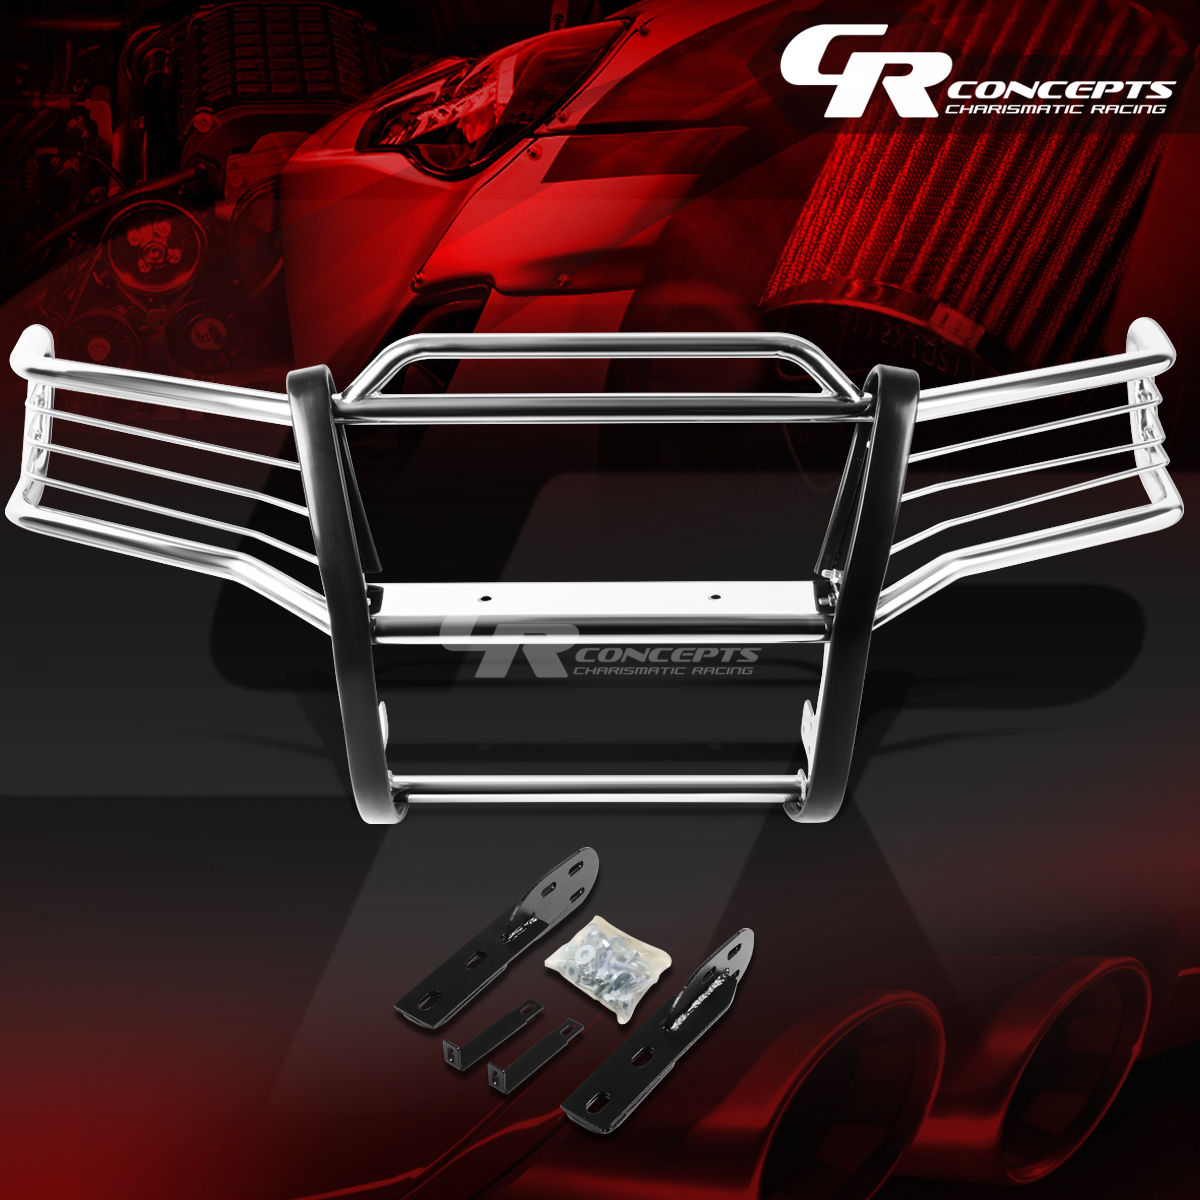 グリル クロムステンレススチールブラシグリルガードフレーム01-05 EXPLORER SPORT TRAC V6 CHROME STAINLESS STEEL BRUSH GRILL GUARD FRAME FOR 01-05 EXPLORER SPORT TRAC V6